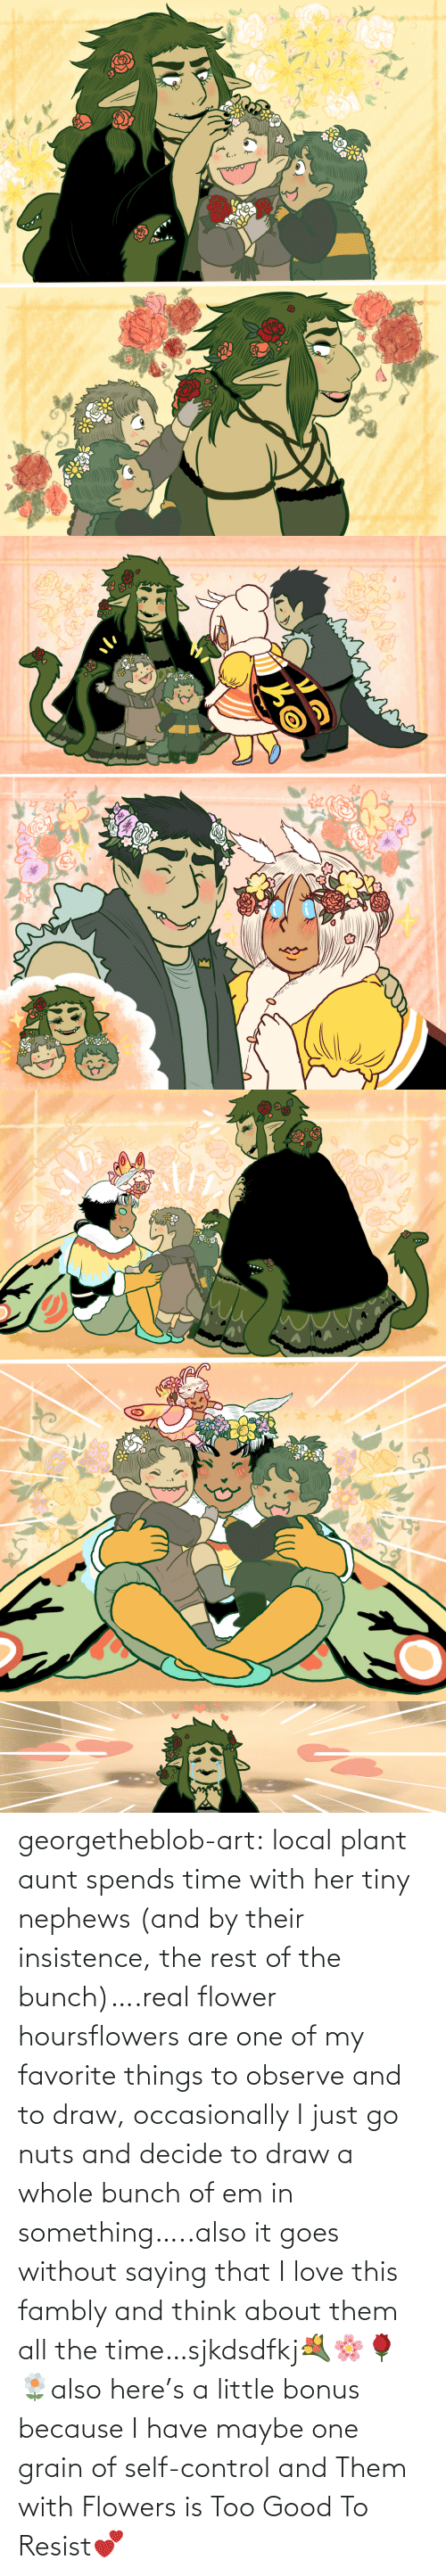 Bonus: georgetheblob-art:  local plant aunt spends time with her tiny nephews (and by their insistence, the rest of the bunch)….real flower hoursflowers are one of my favorite things to observe and to draw, occasionally I just go nuts and decide to draw a whole bunch of em in something…..also it goes without saying that I love this fambly and think about them all the time…sjkdsdfkj💐🌸🌹🌼also here's a little bonus because I have maybe one grain of self-control and Them with Flowers is Too Good To Resist💕